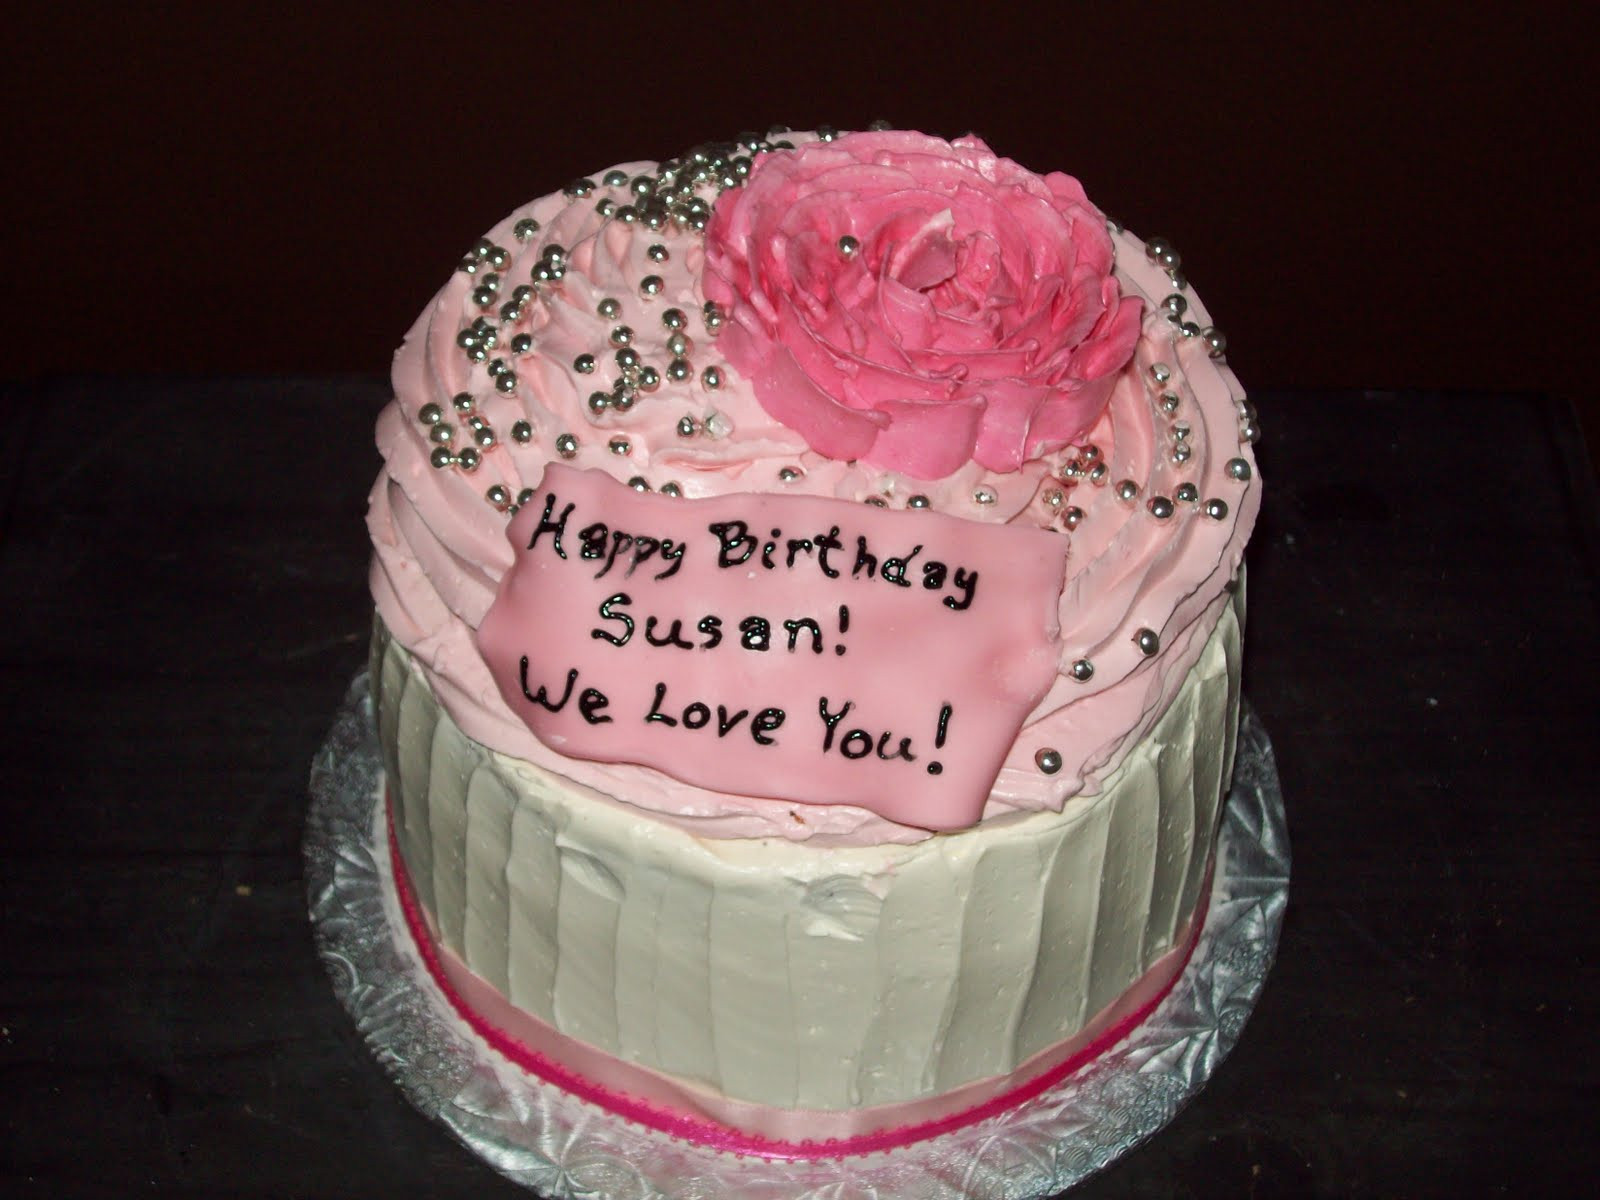 Best ideas about Happy Birthday Susan Cake . Save or Pin Free Embroidery Designs Cute Embroidery Designs Now.